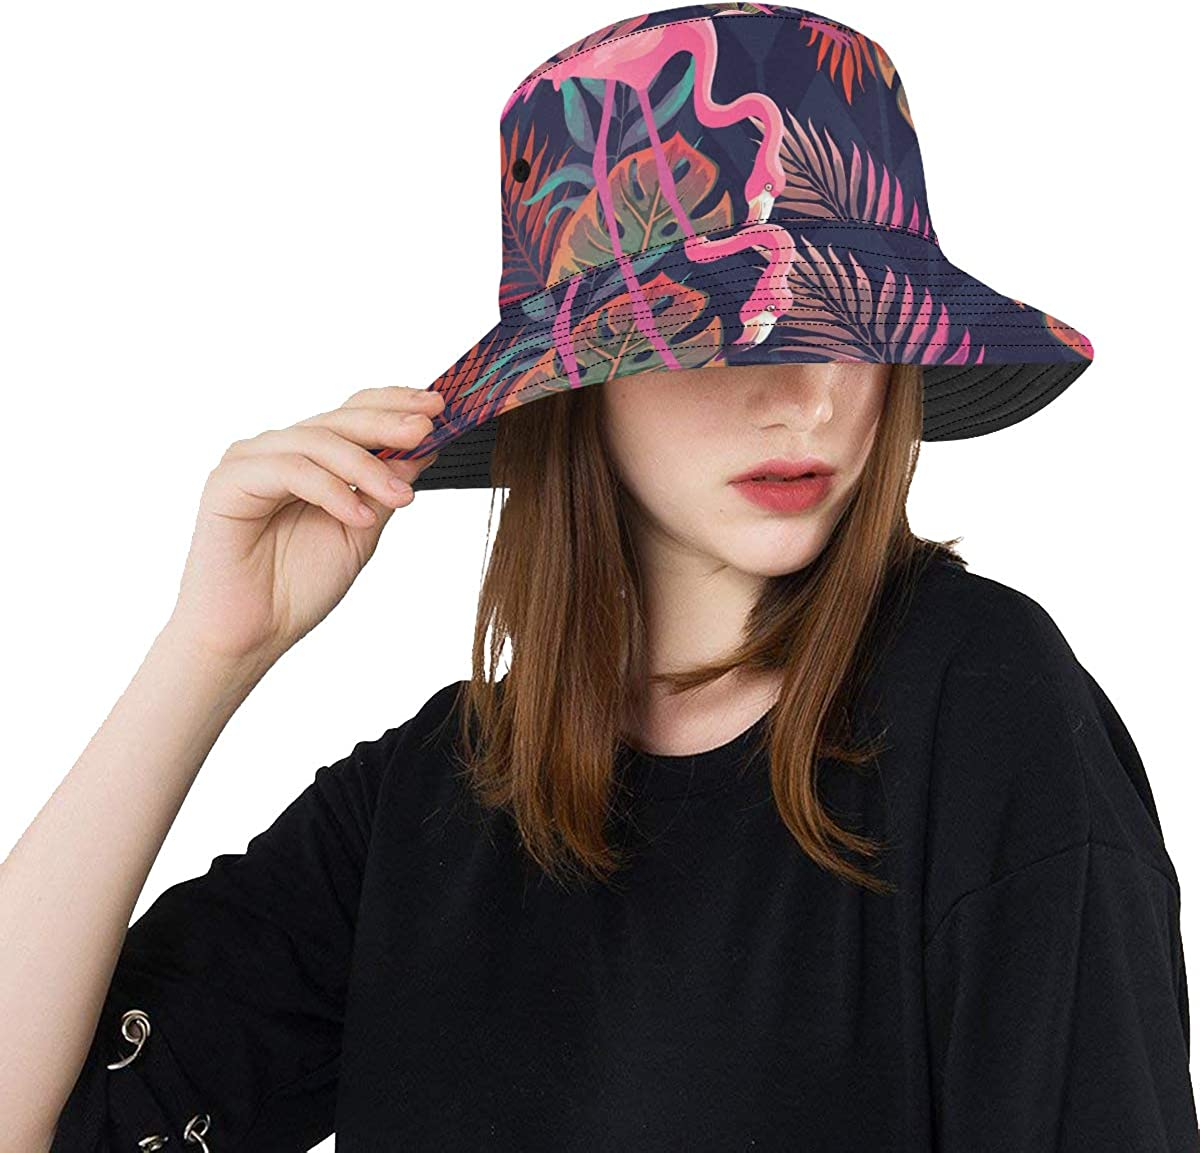 Colorful Beach Hat Tropical Rainforest Colorful Palm Trees Summer Unisex Fishing Sun Top Bucket Hats for Teens Women Fisherman Cap Outdoor Sport Funny Beach Hat